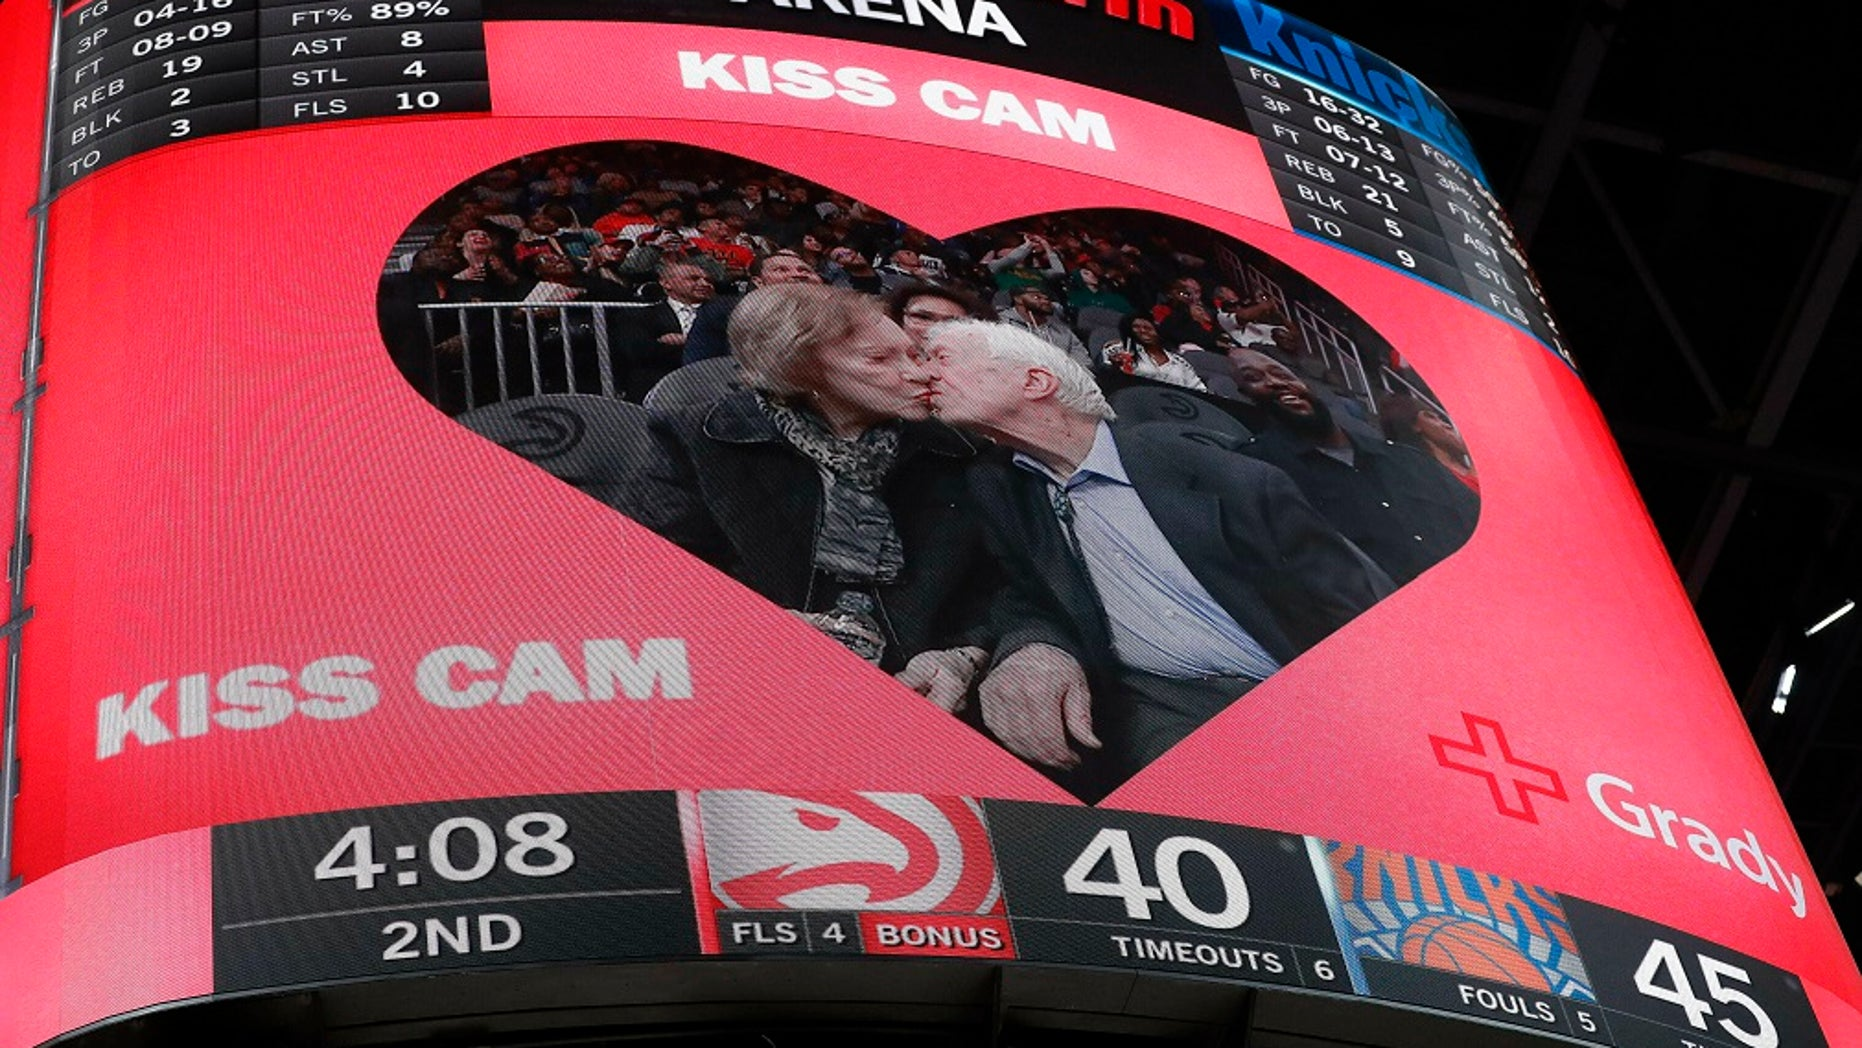 Former President Jimmy Carter and his wife Rosalynn were spotted at the Atlanta Hawks game on Valentine's Day and warmed hearts after they were featured on the kiss cam.